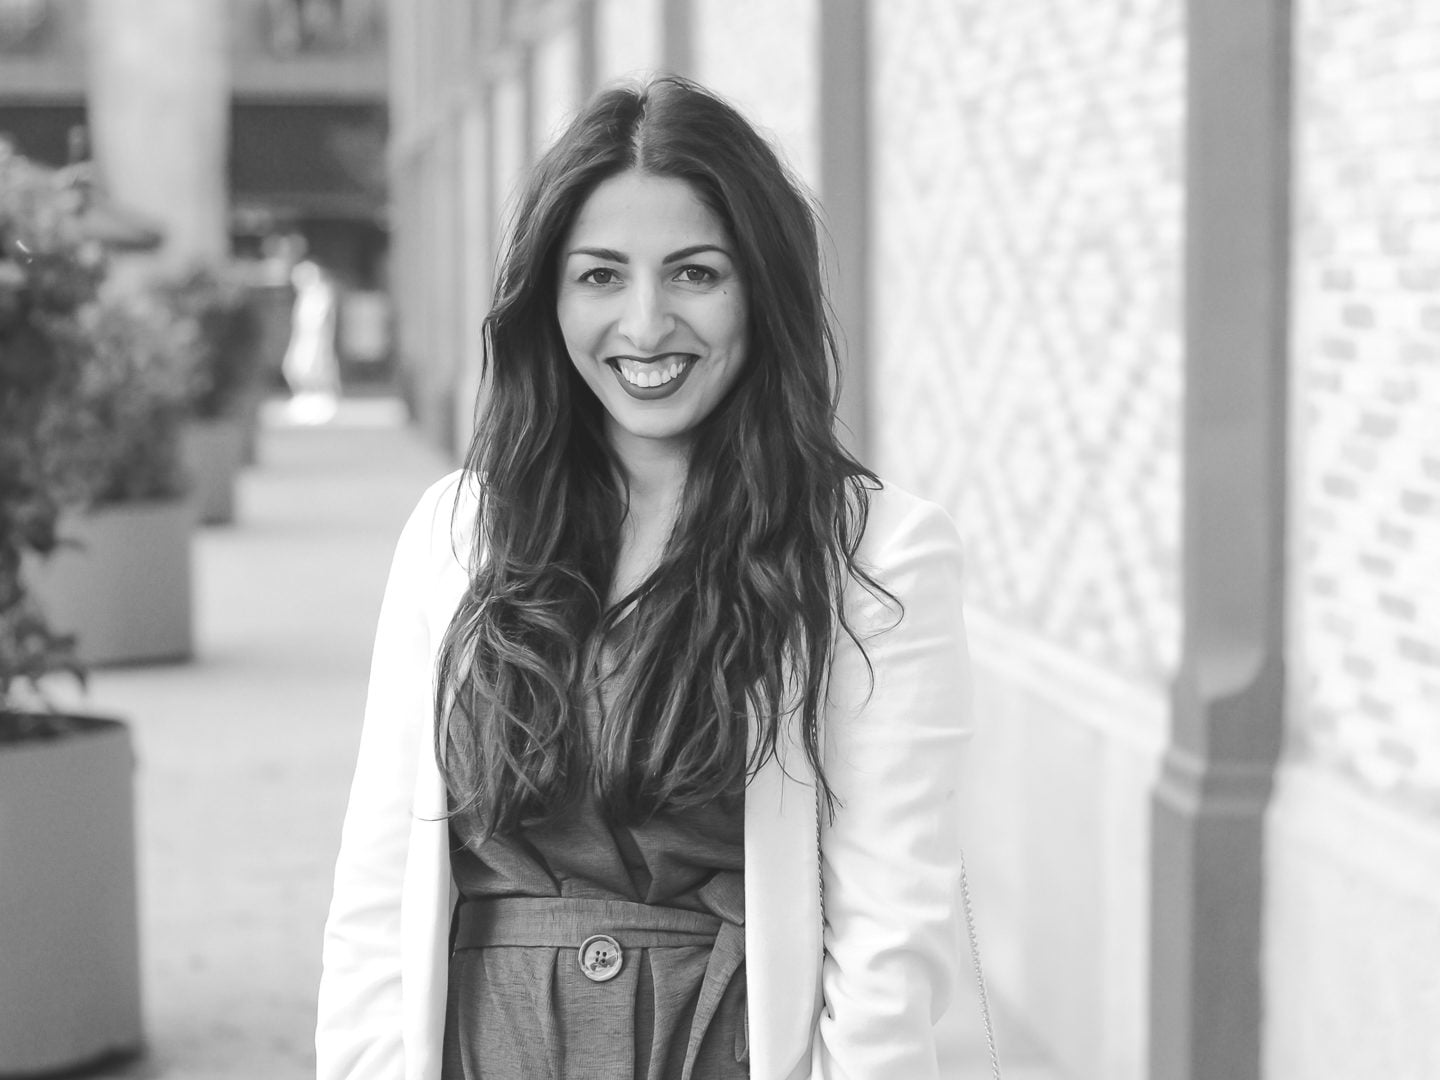 Salma of Fashion by Compassion | Ethical Influencers